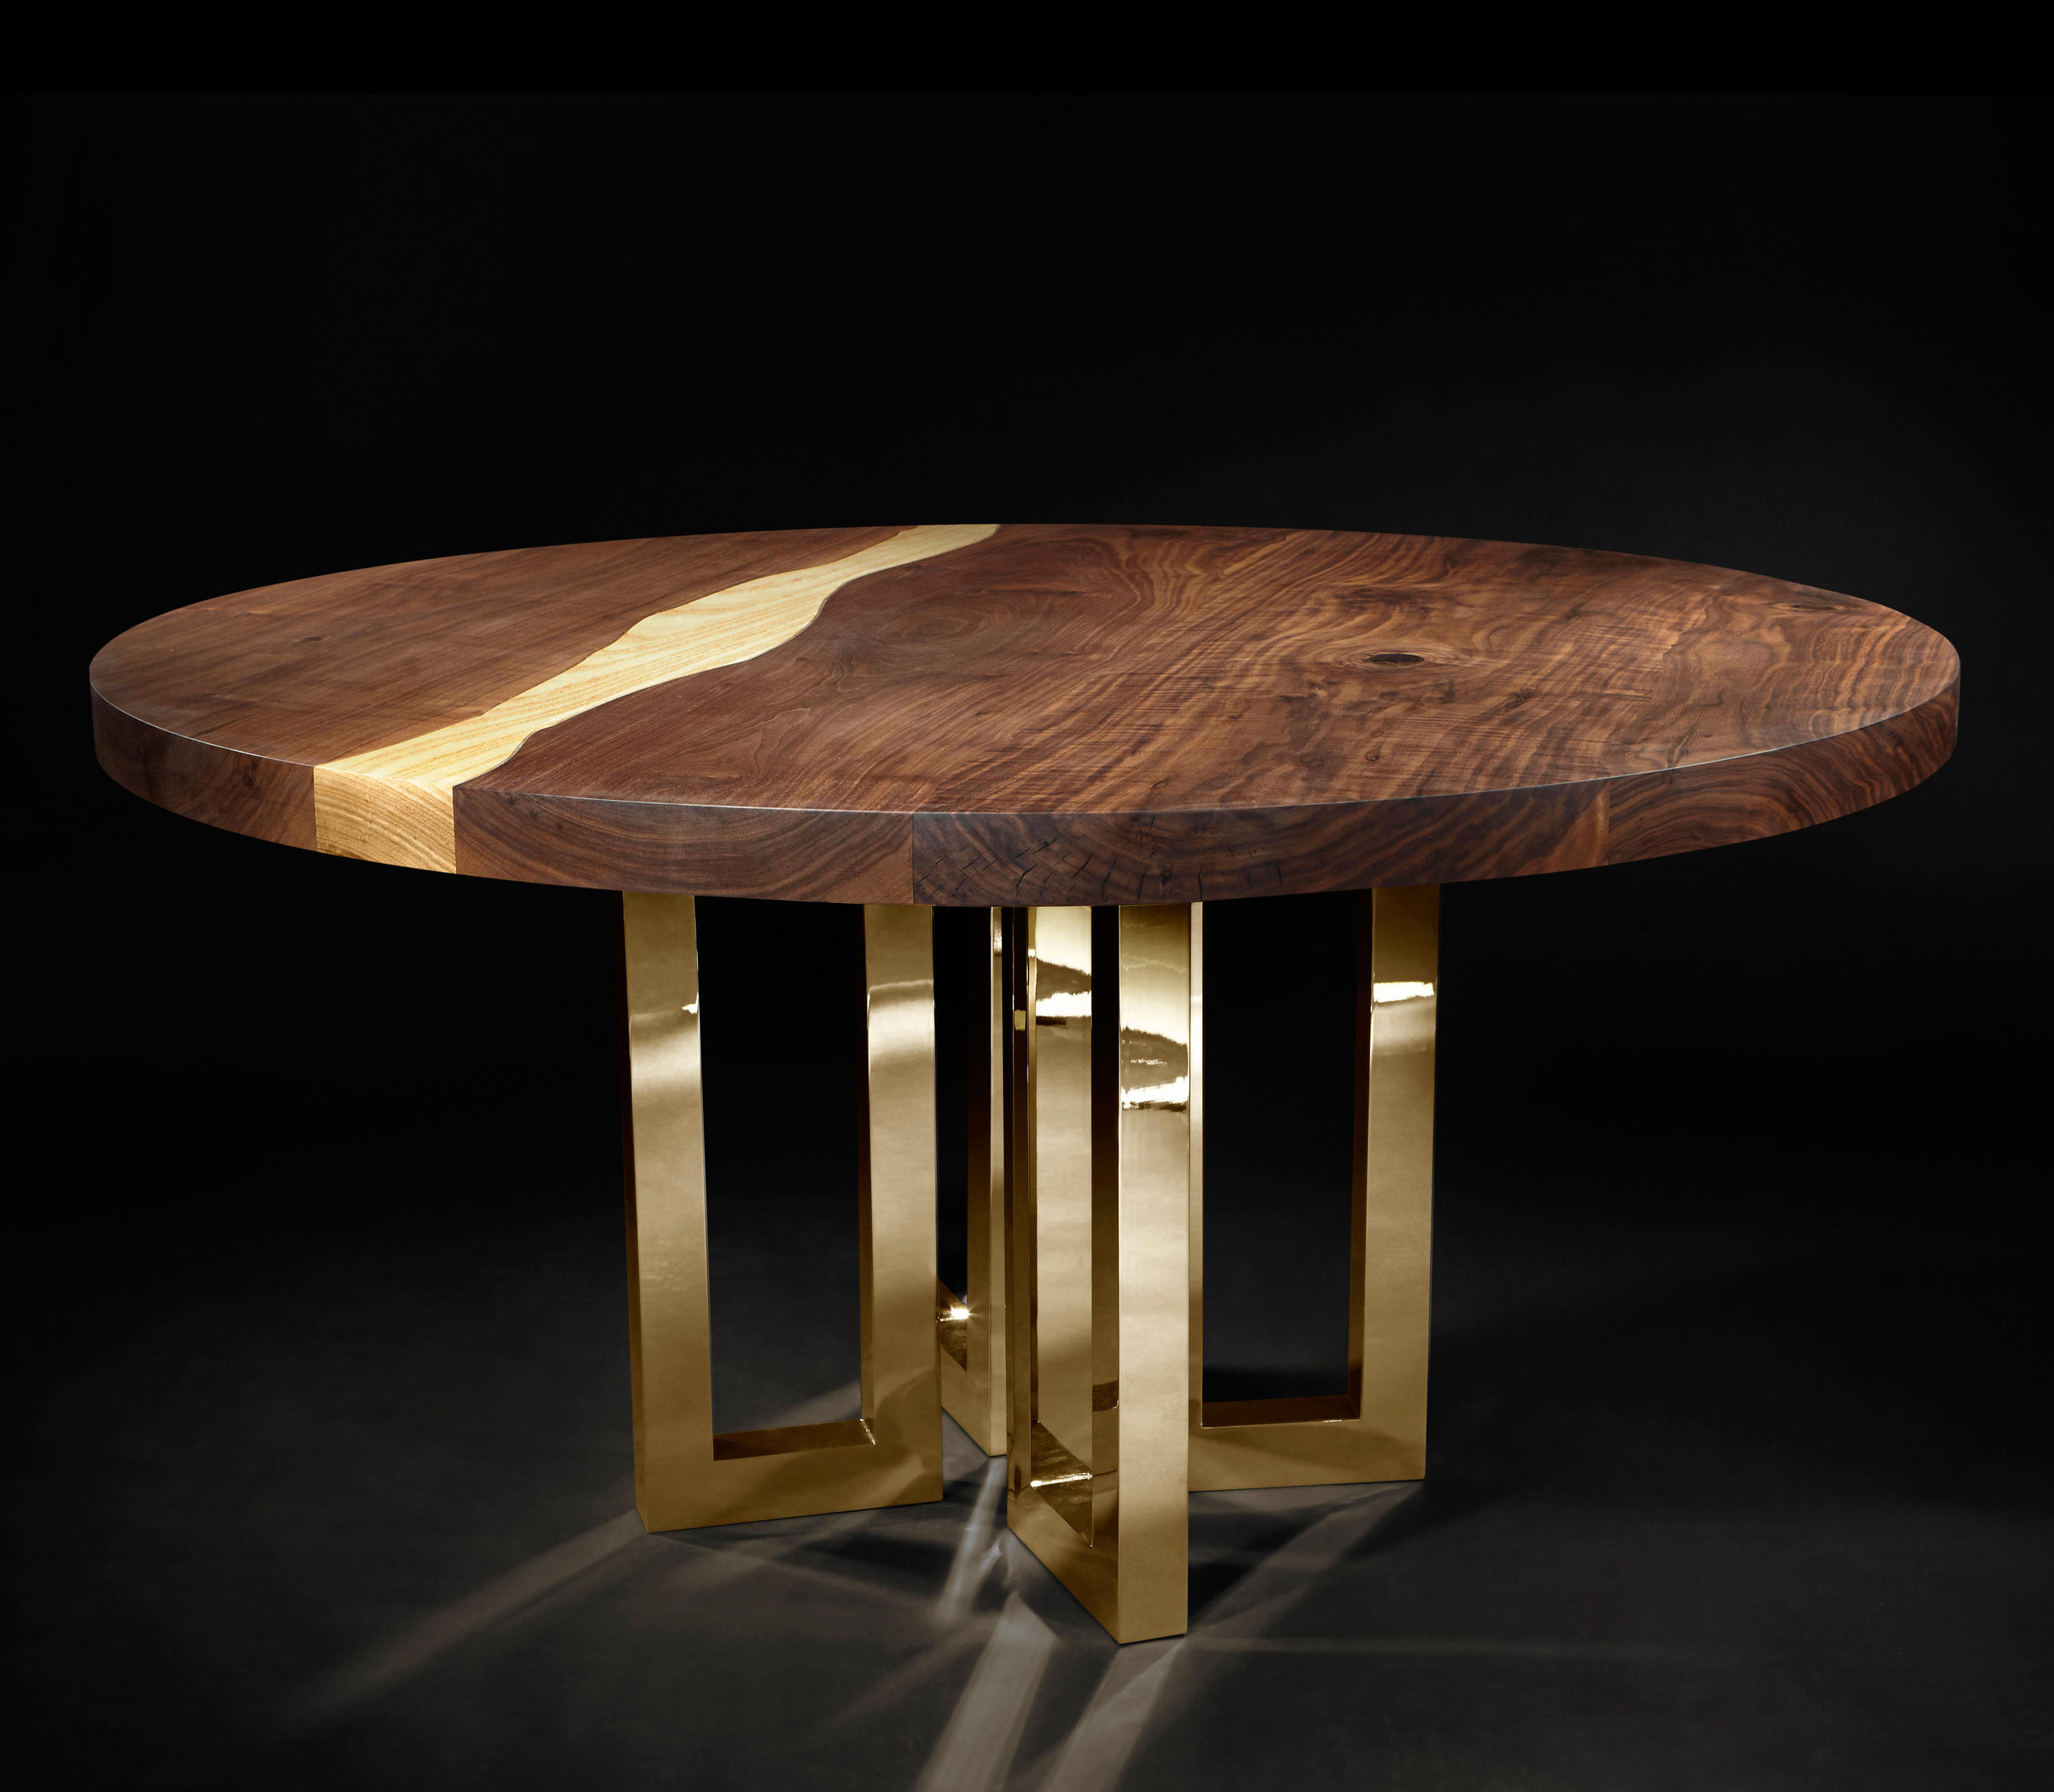 Il Pezzo 6 Round Table Dining Tables From Il Pezzo